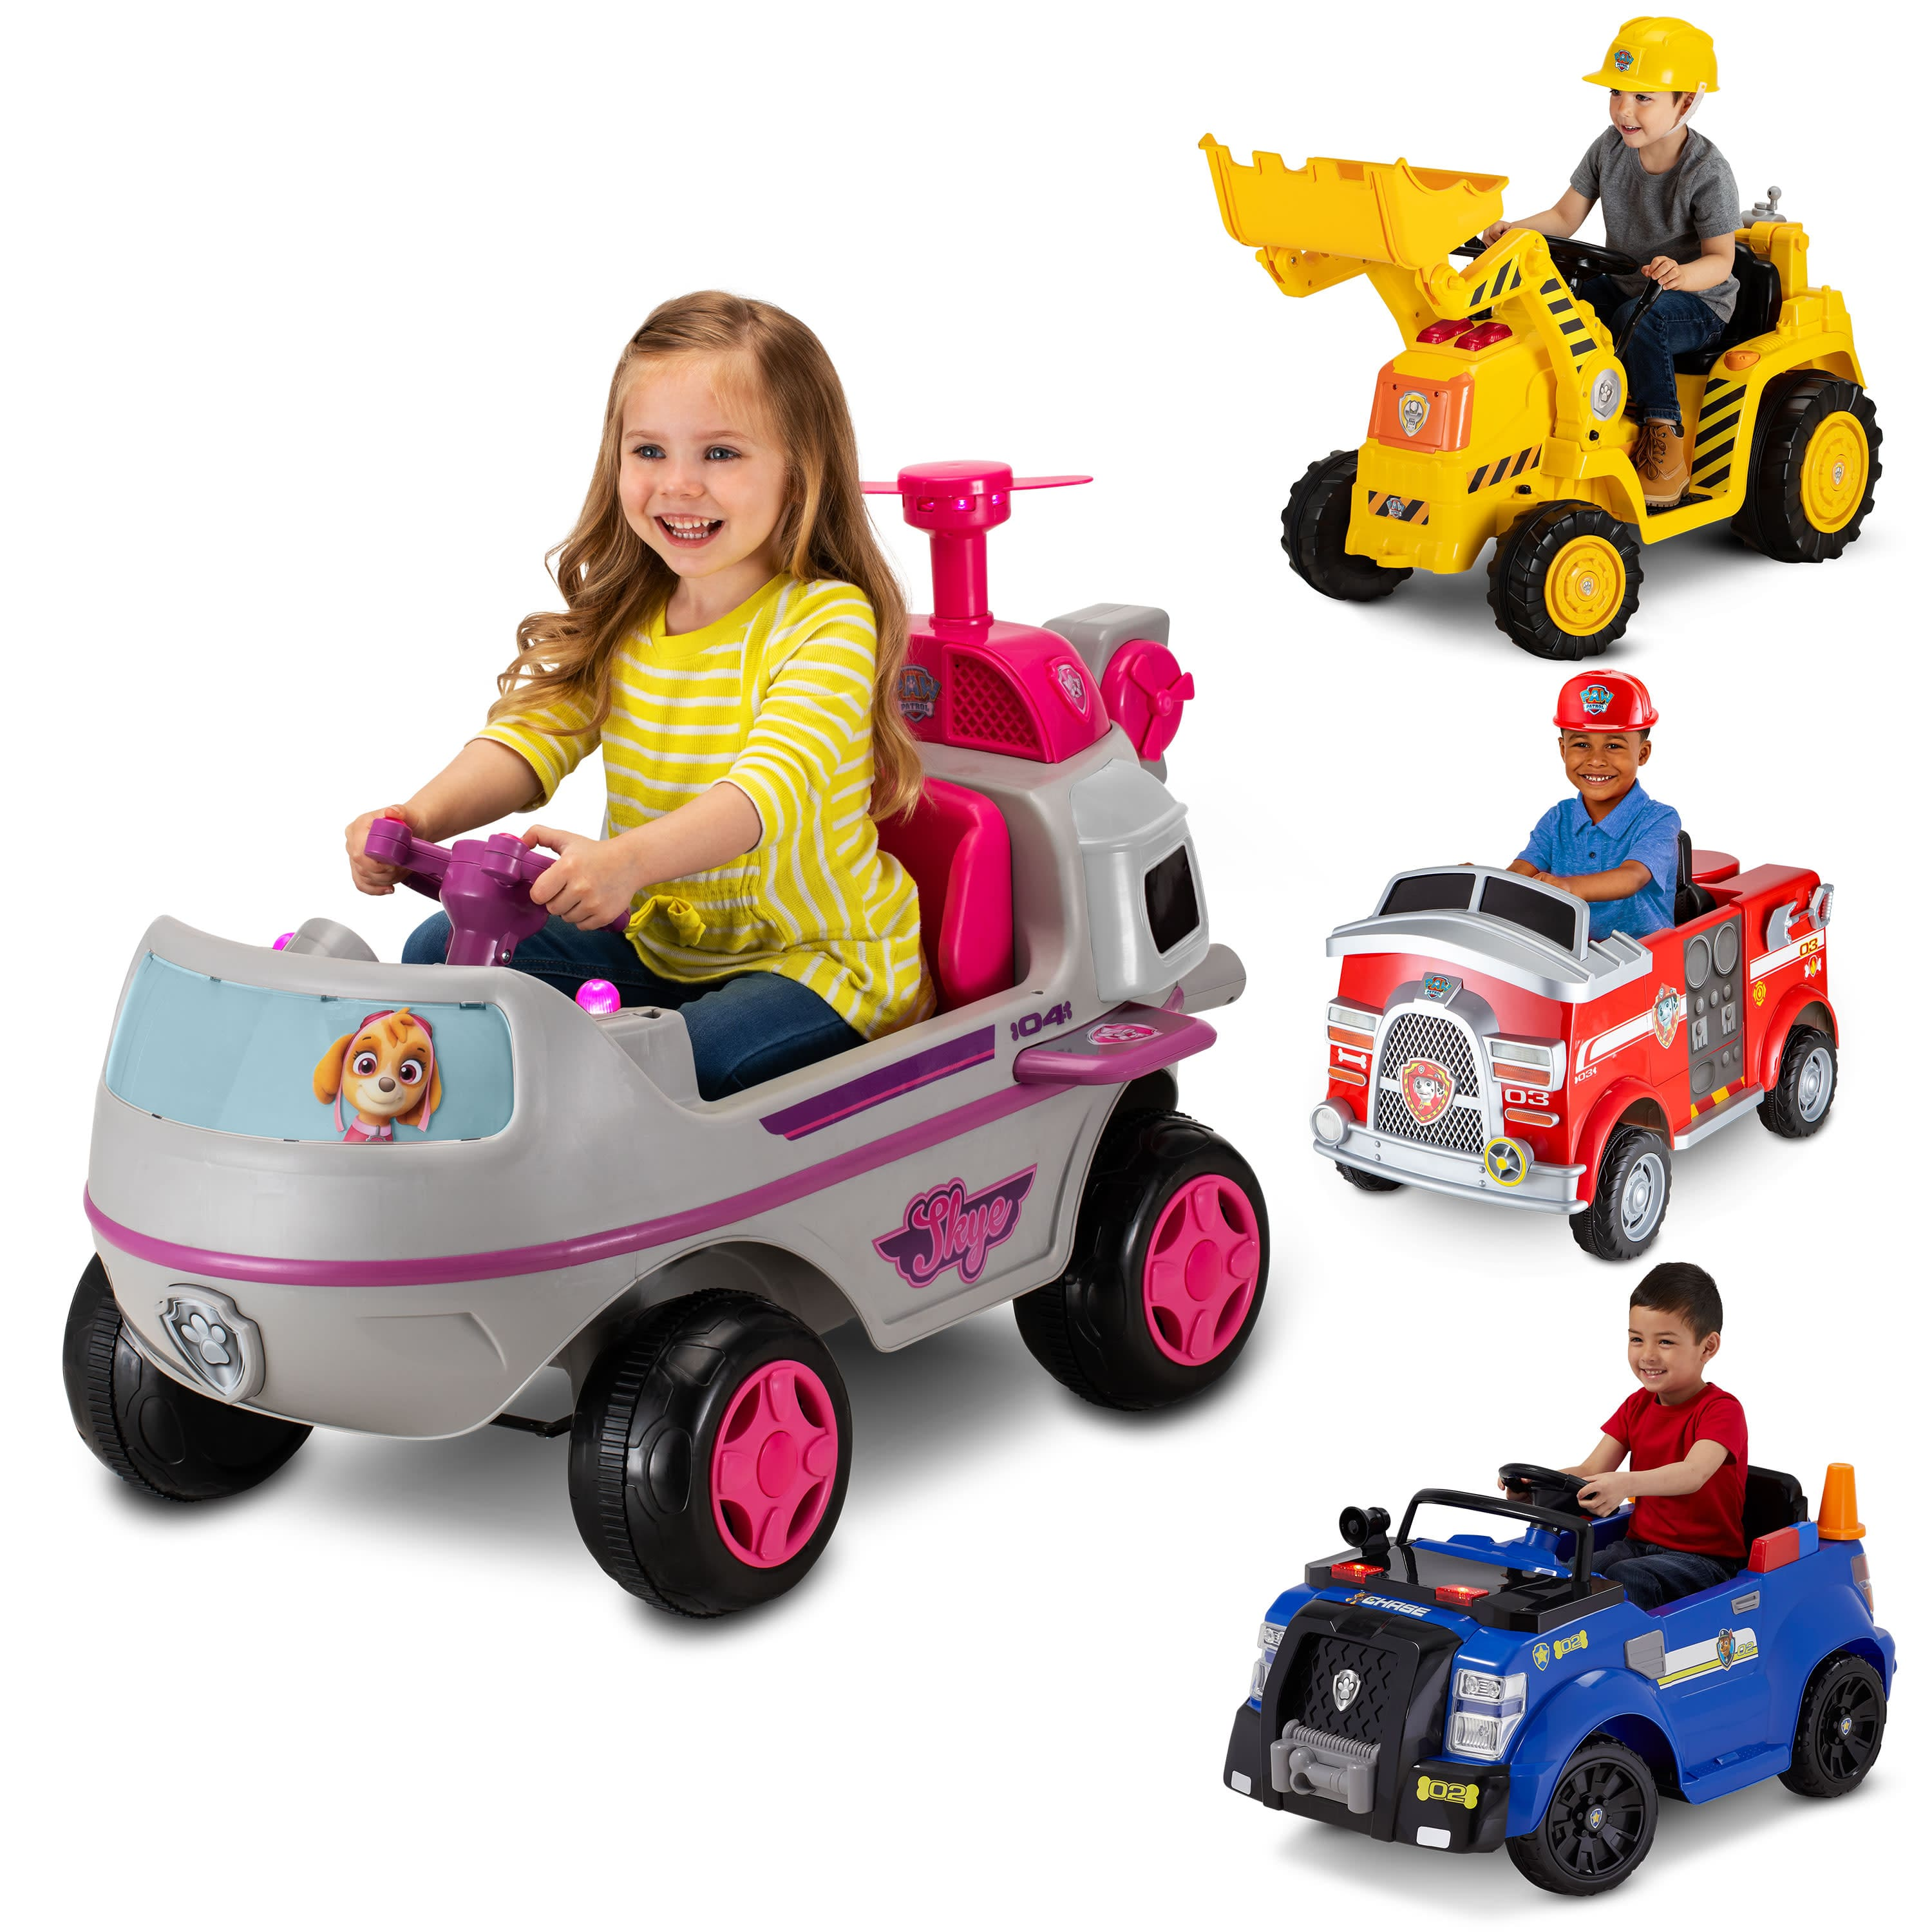 Nickelodeon's PAW Patrol: Skye Helicopter, 6-Volt Ride-On Toy by Kid Trax $78